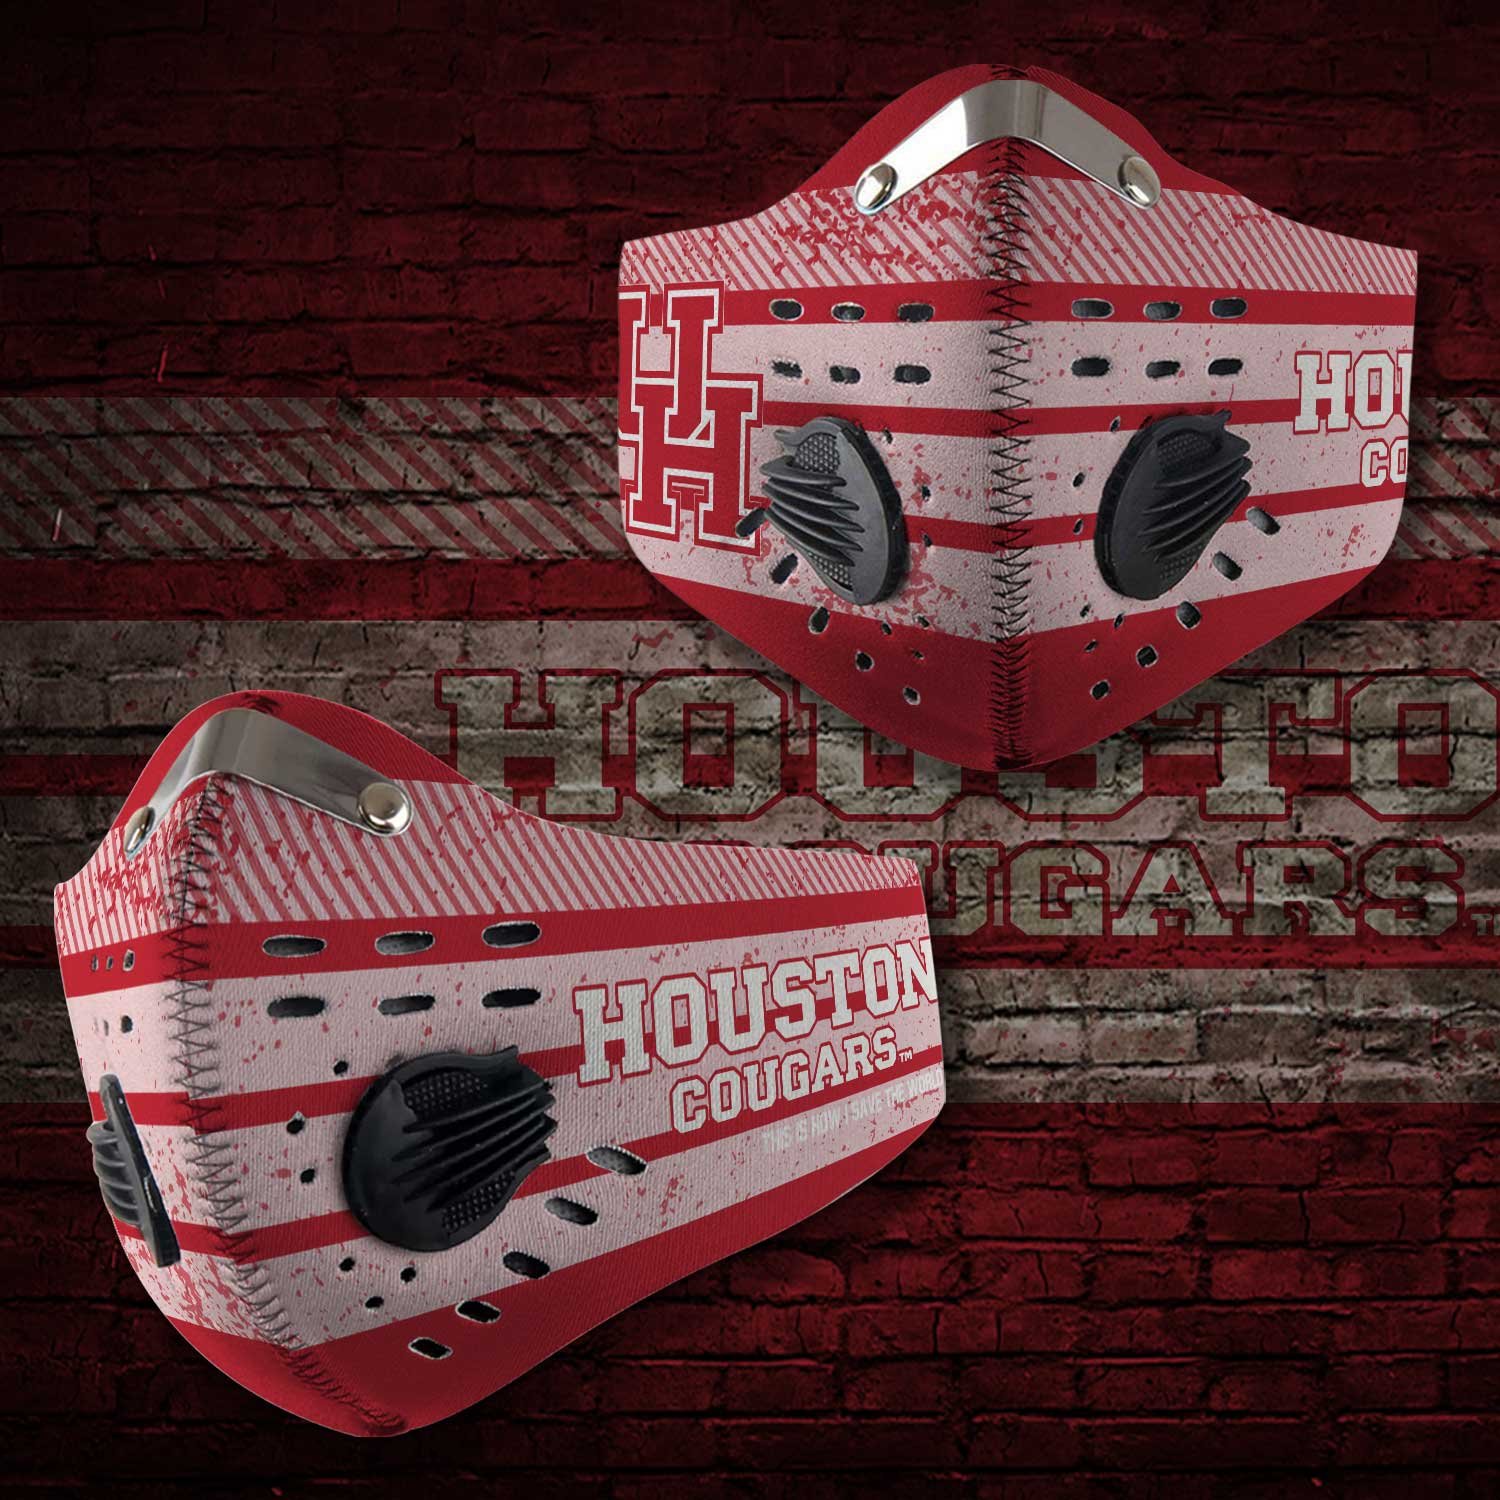 Houston cougars football this is how i save the world face mask 1